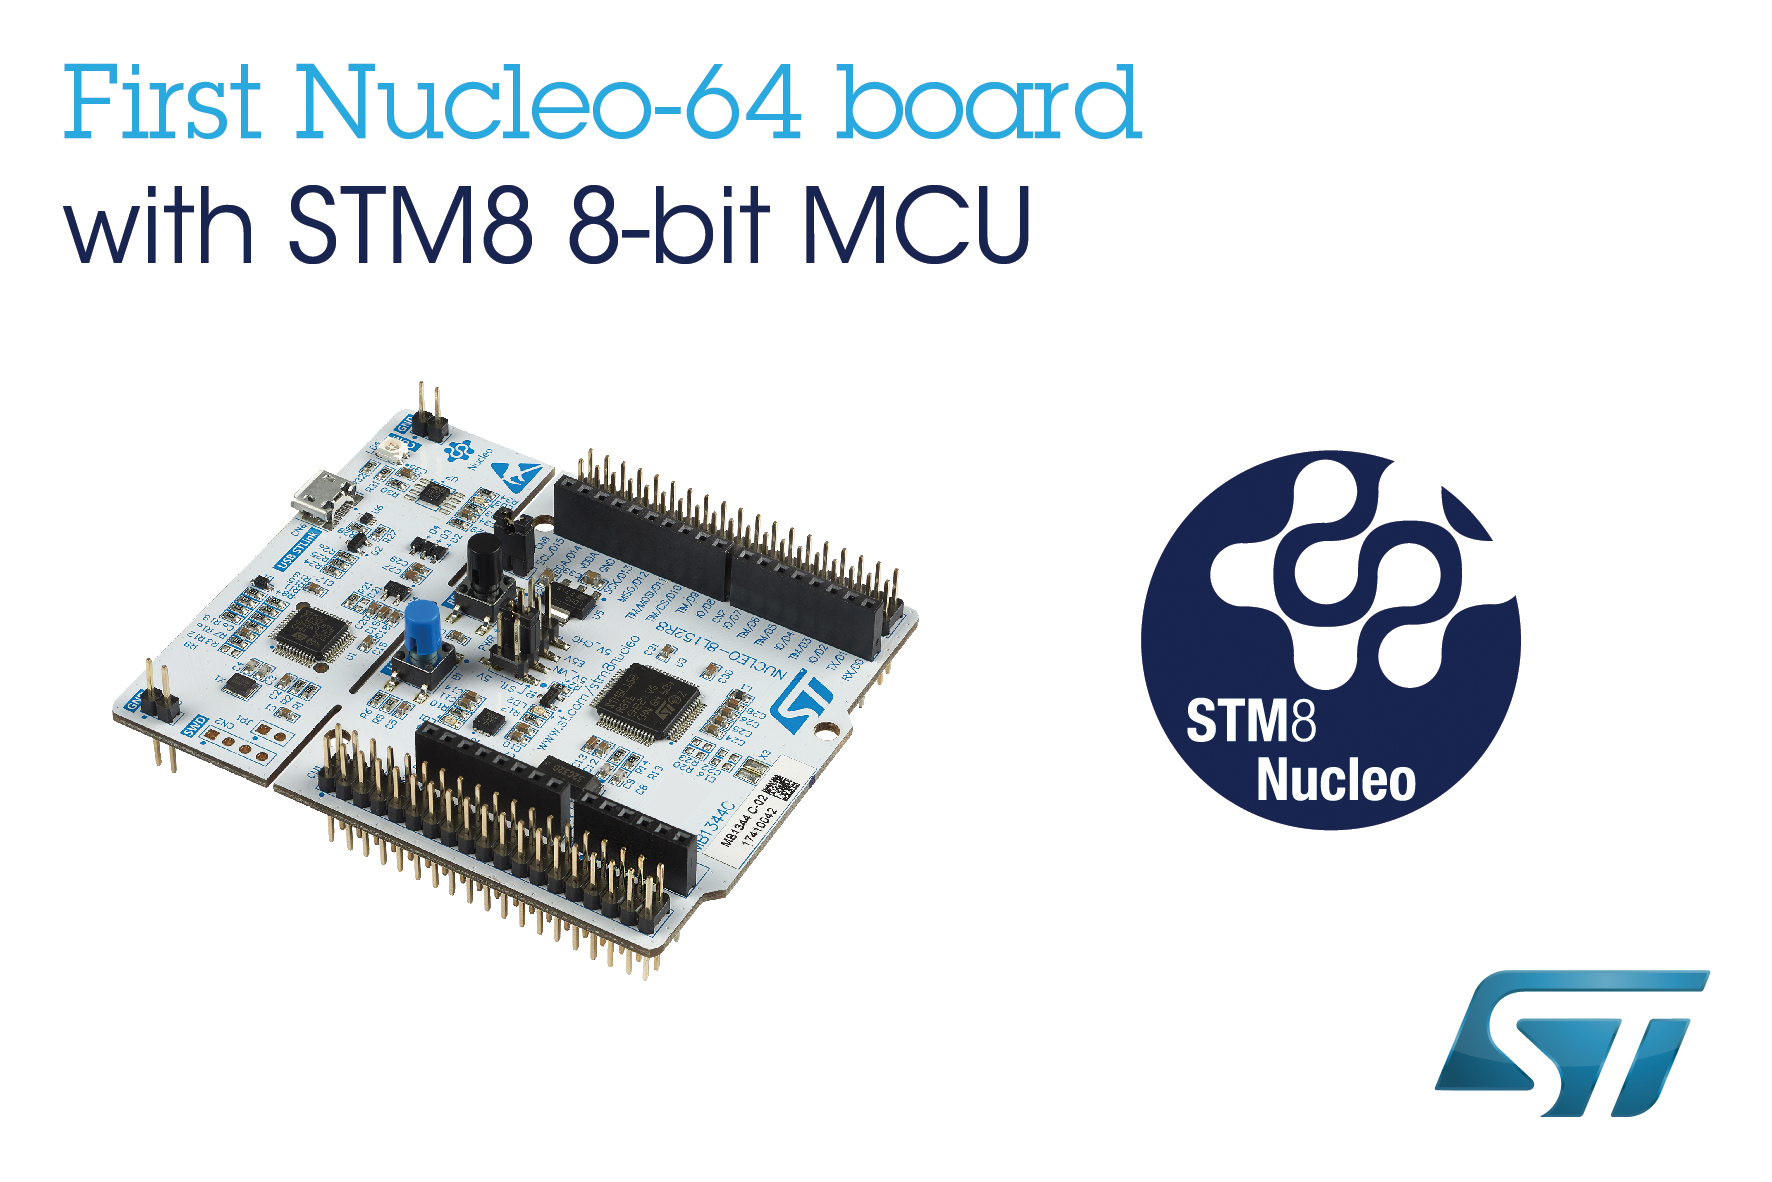 Latest Nucleo boards access open source 8-bit MCU I/Os